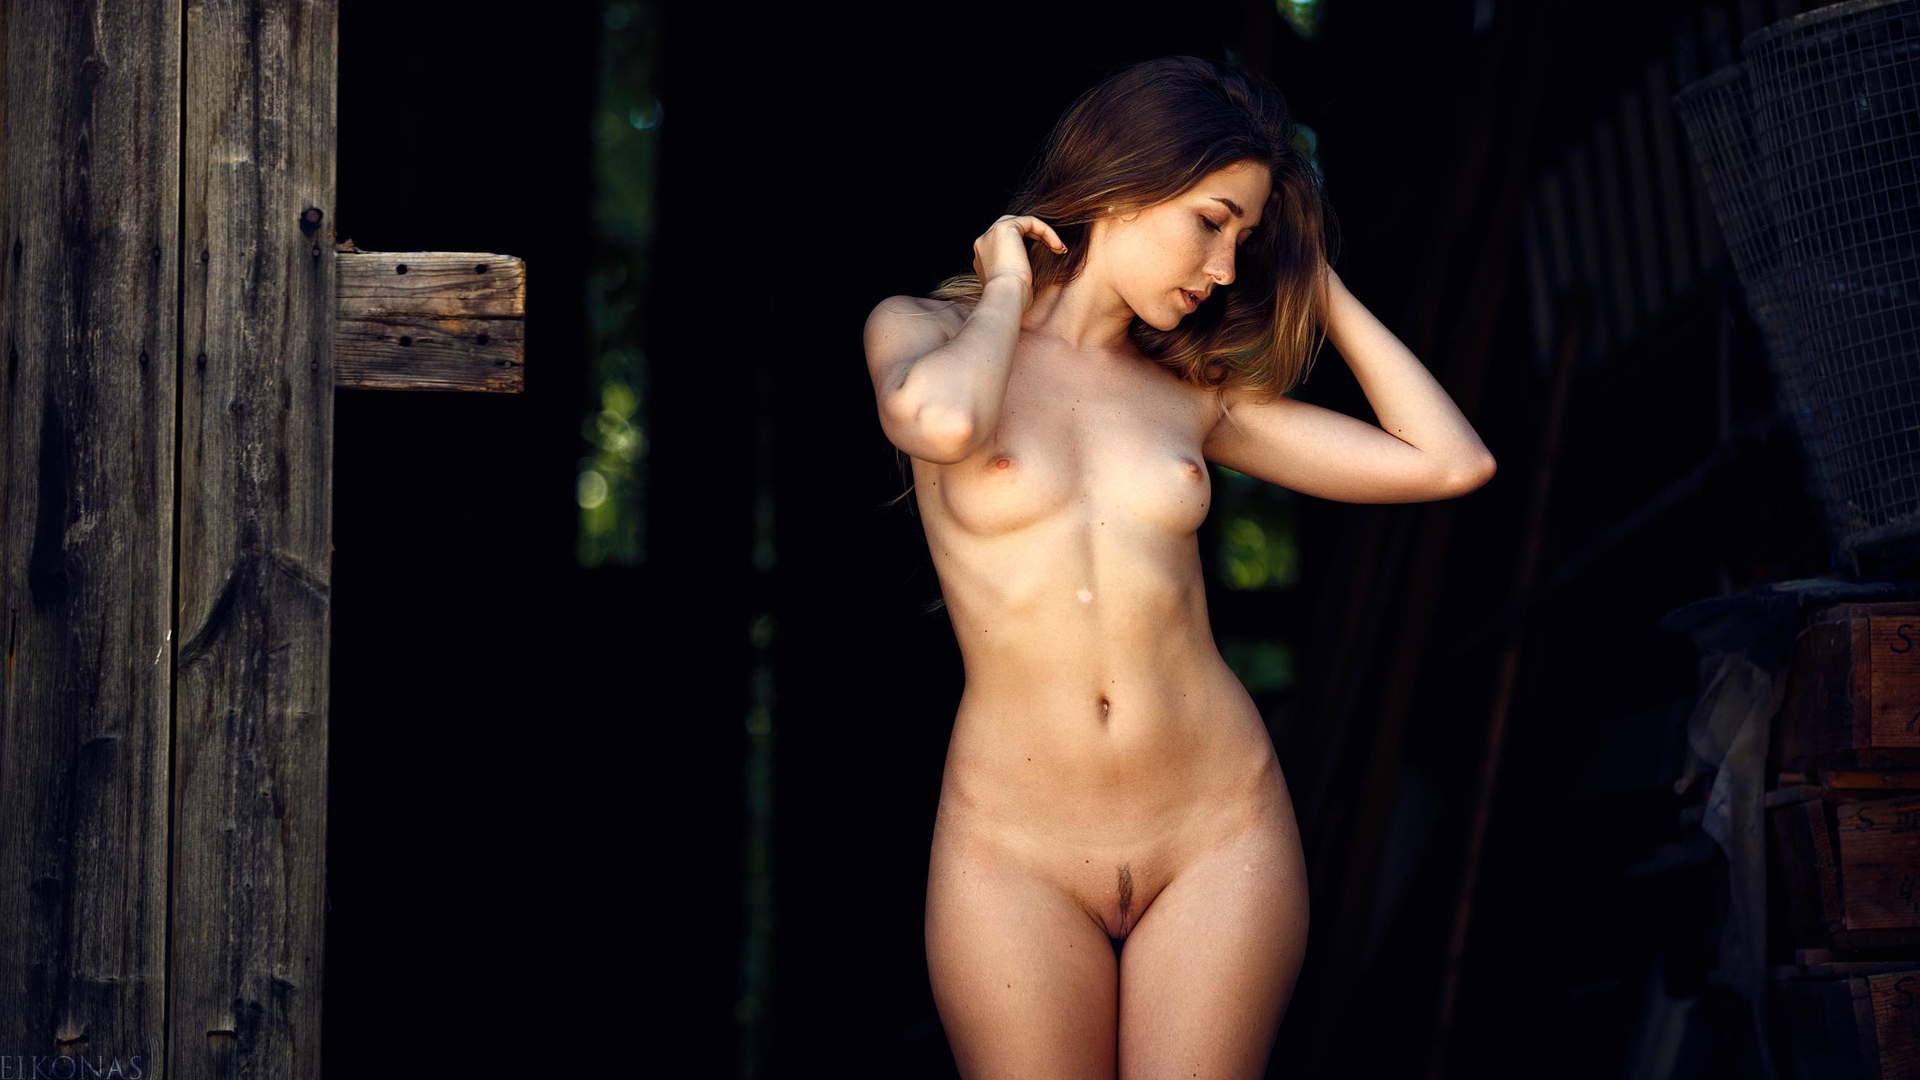 Nude photos free download